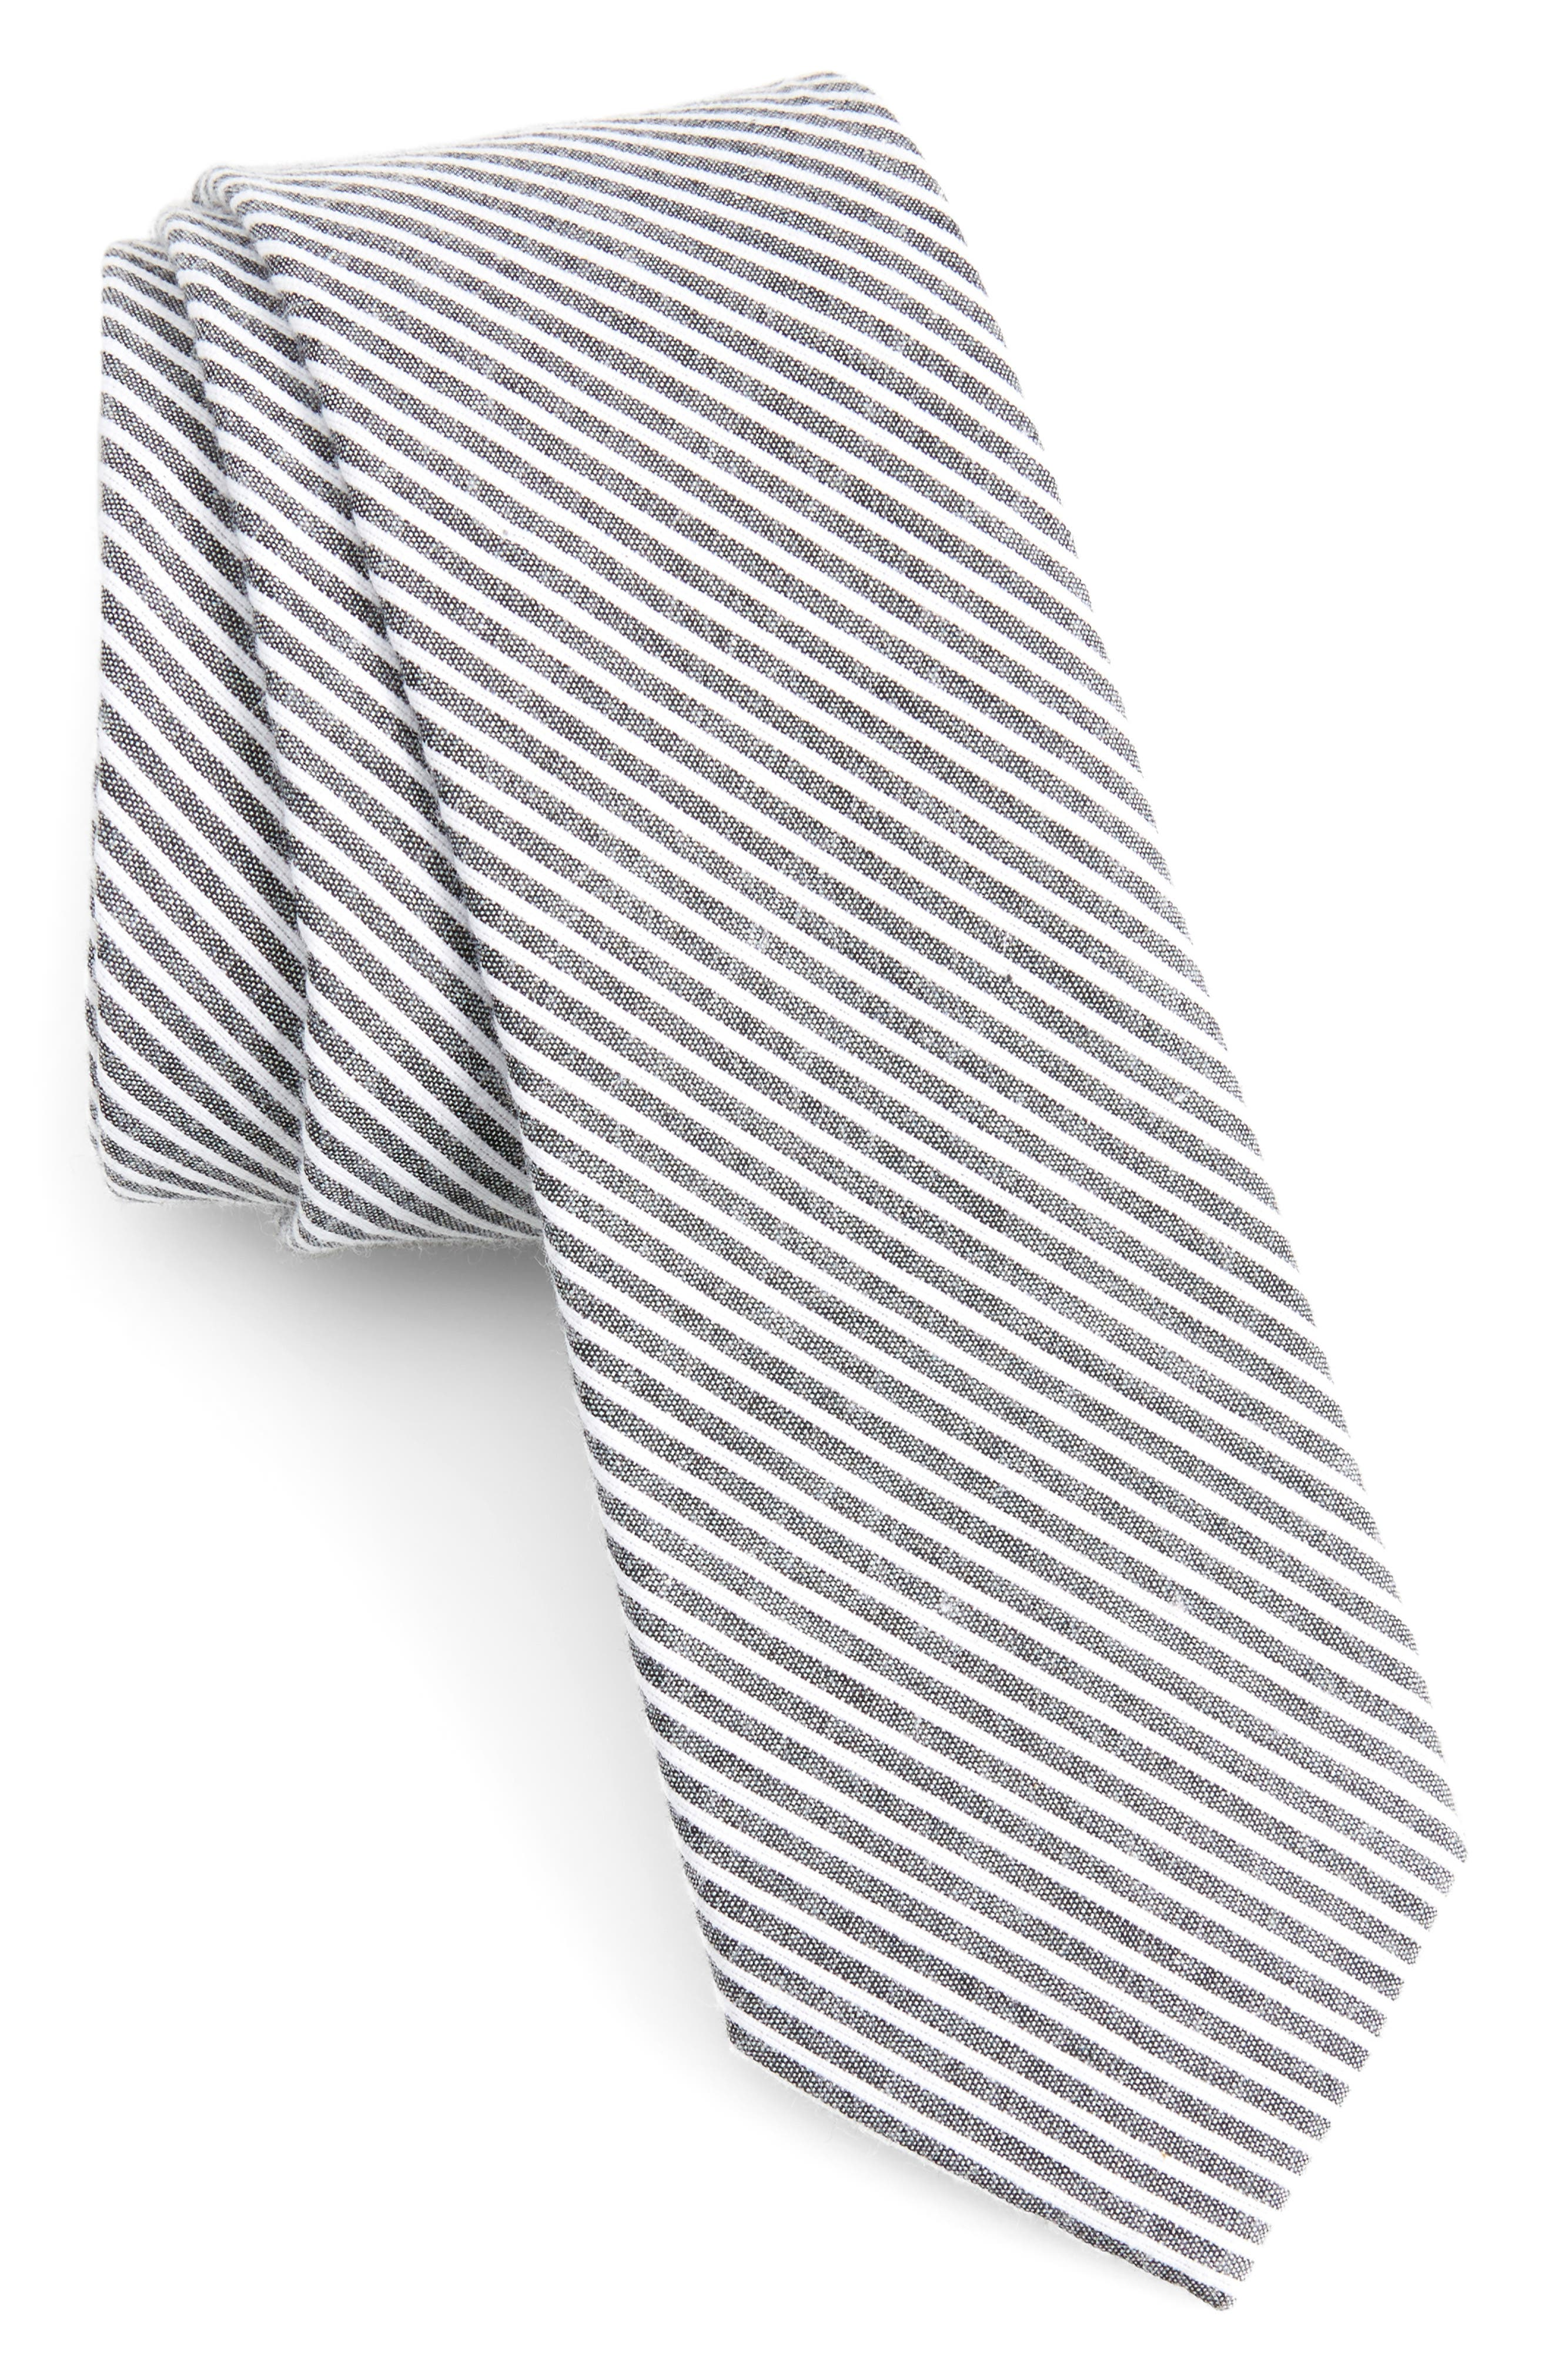 Kenton Stripe Cotton Tie,                         Main,                         color, Black